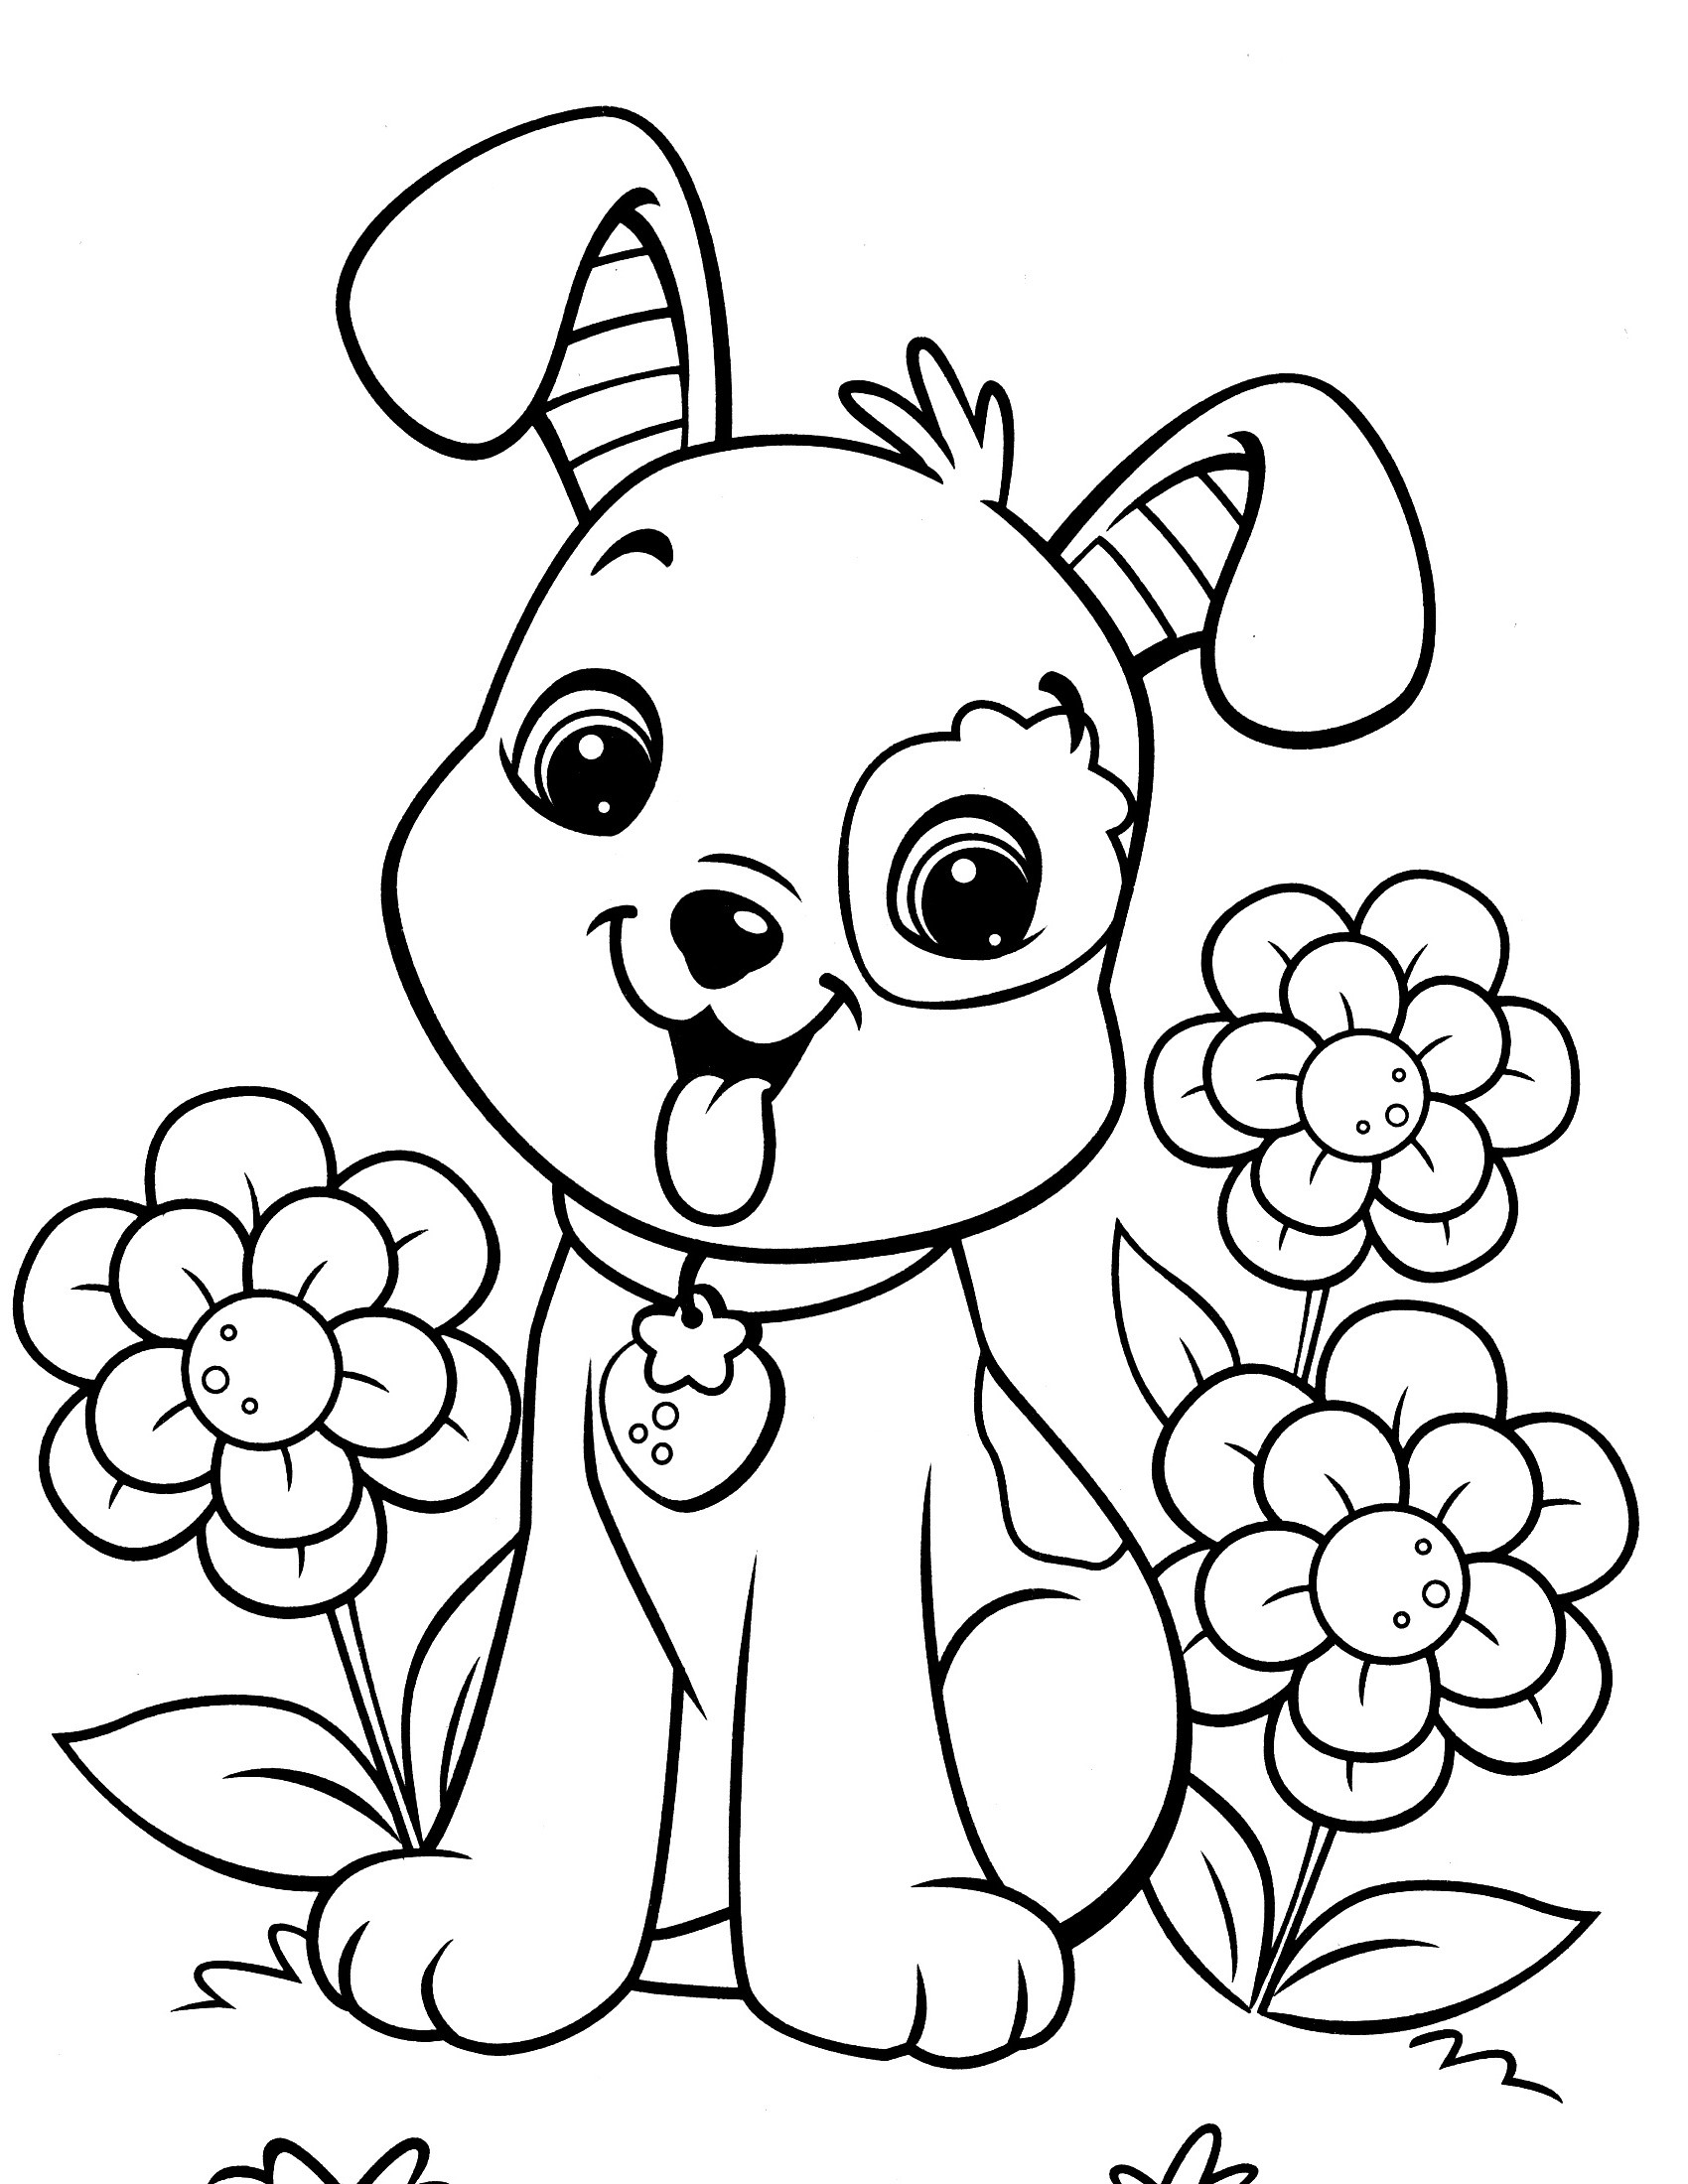 coloring : Pet Coloring Sheets New Dog Coloring Images Coloring Pages Of Dog  Pet Coloring Sheets ~ queens